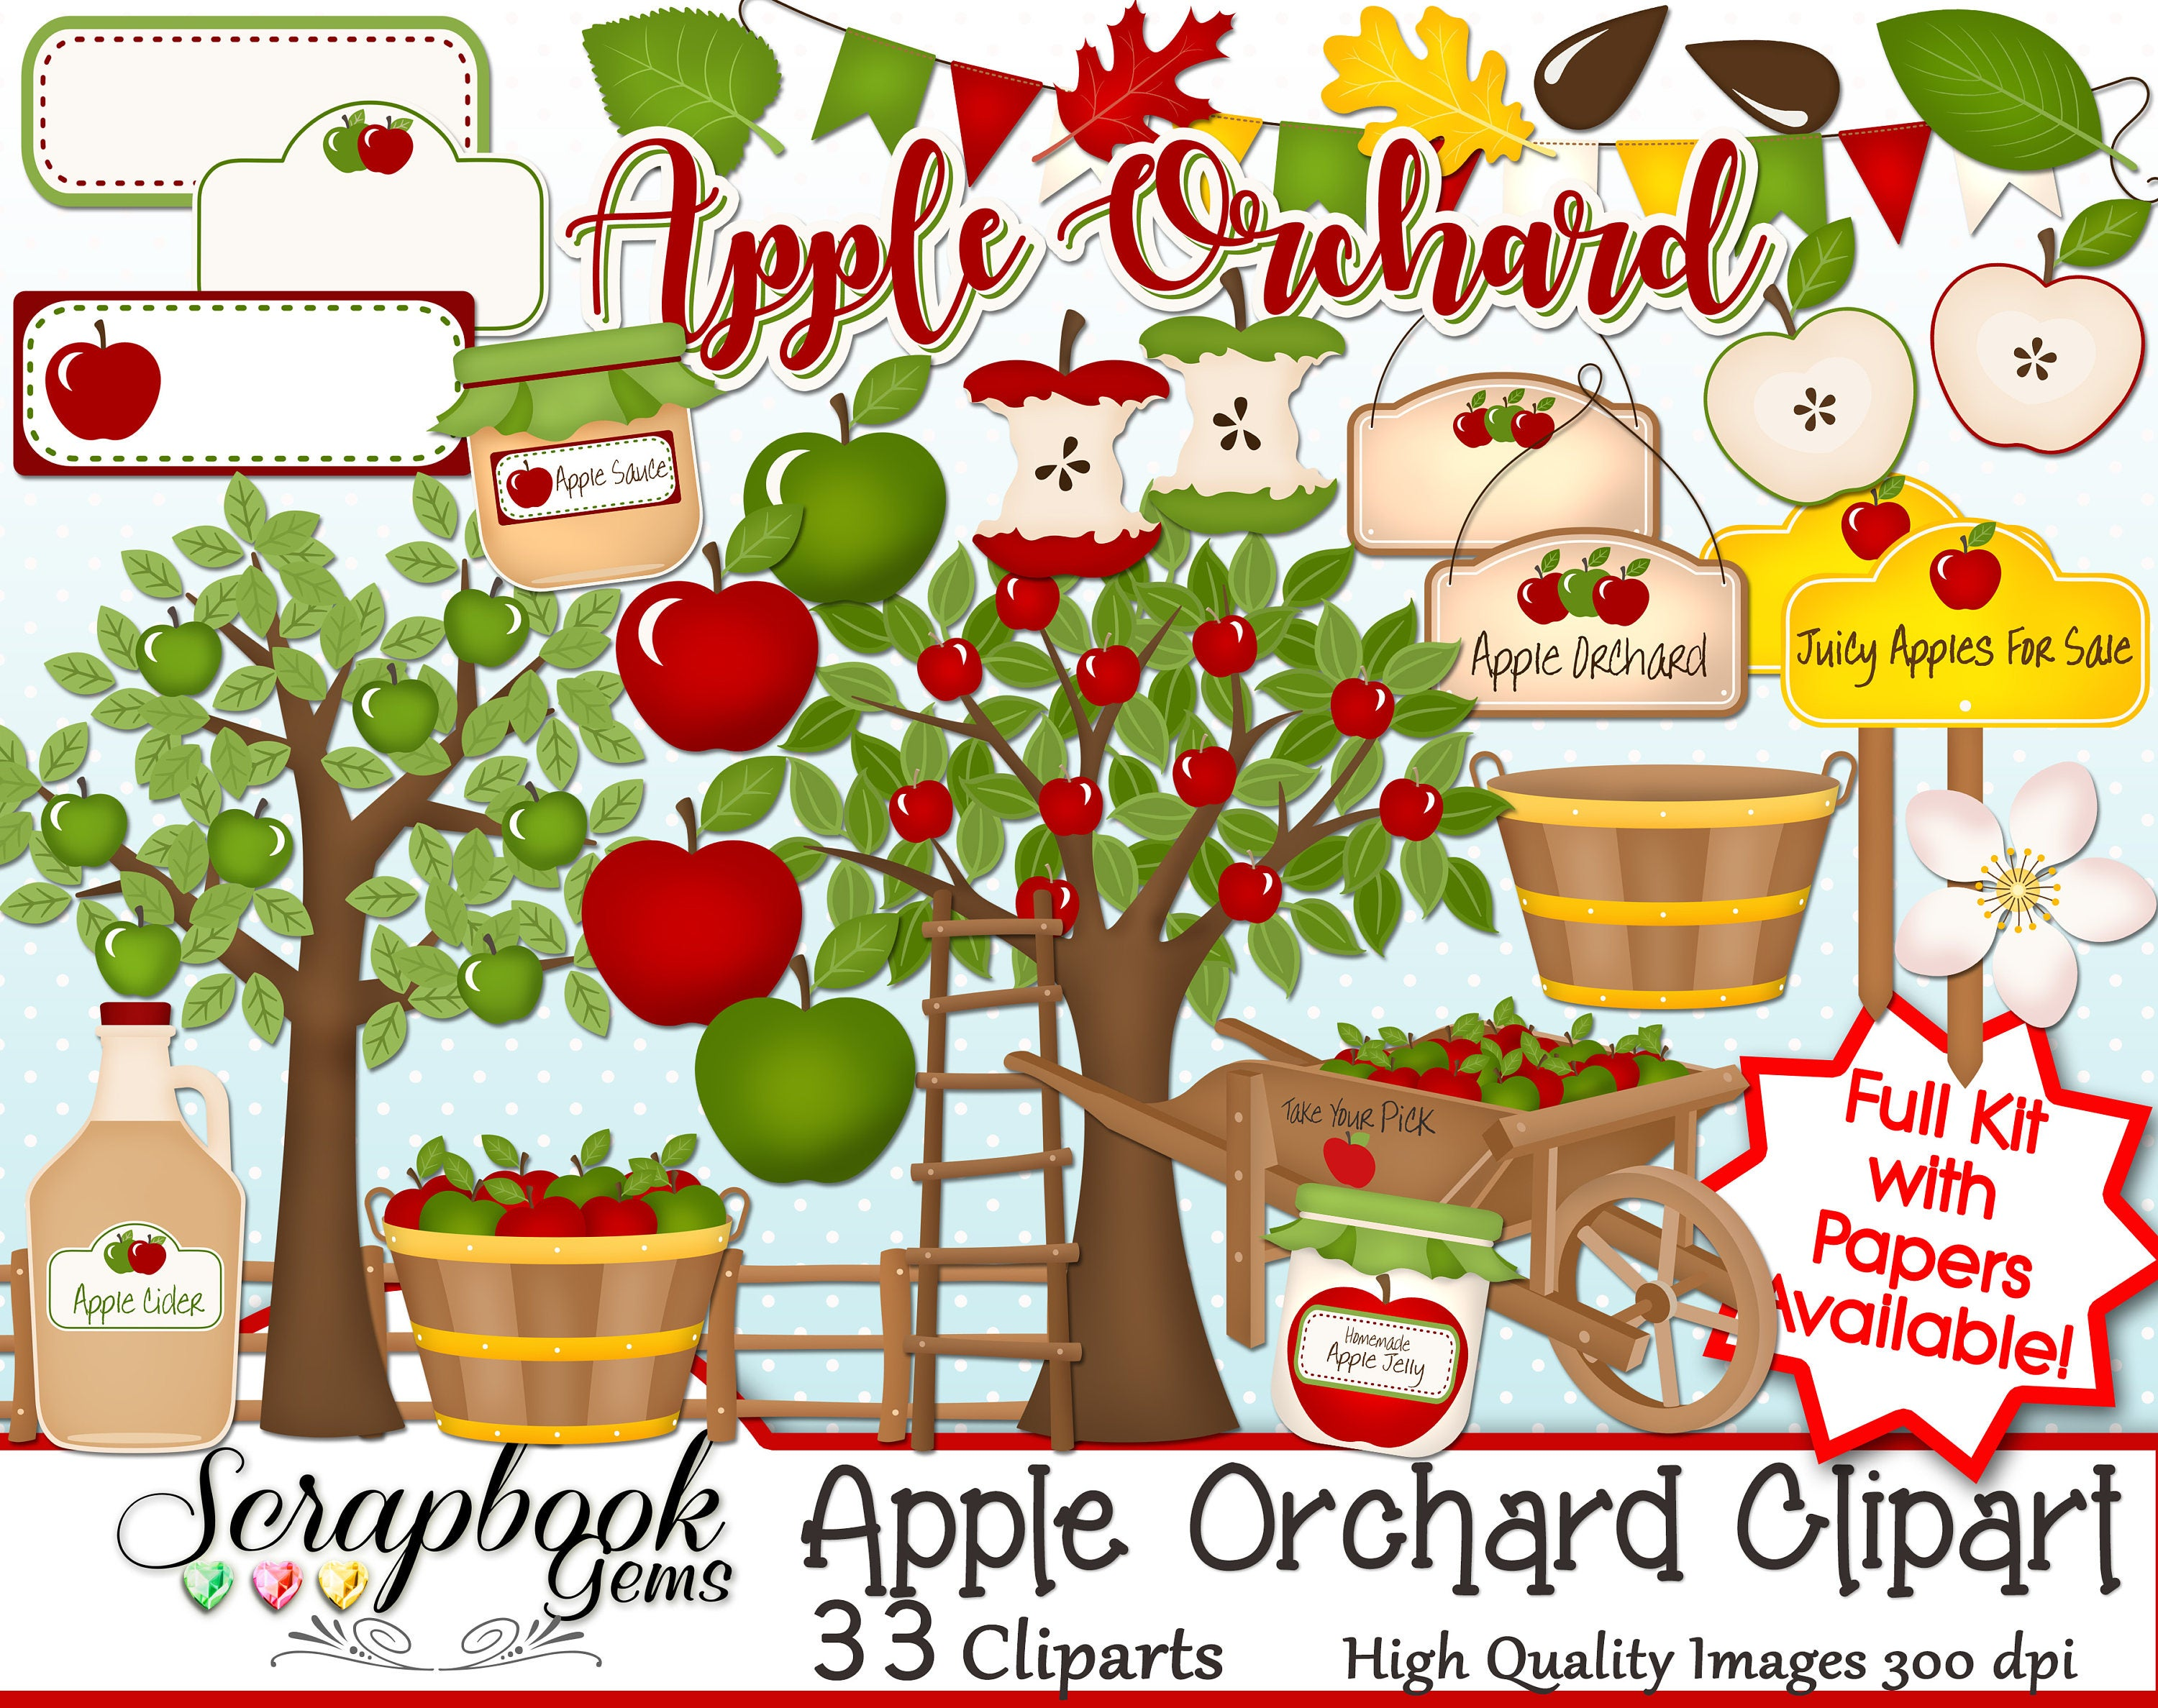 APPLE ORCHARD Clipart, 33 png Clipart files Instant Download fall autumn  thanksgiving fruit tree apple juice cider applesauce farmers market.